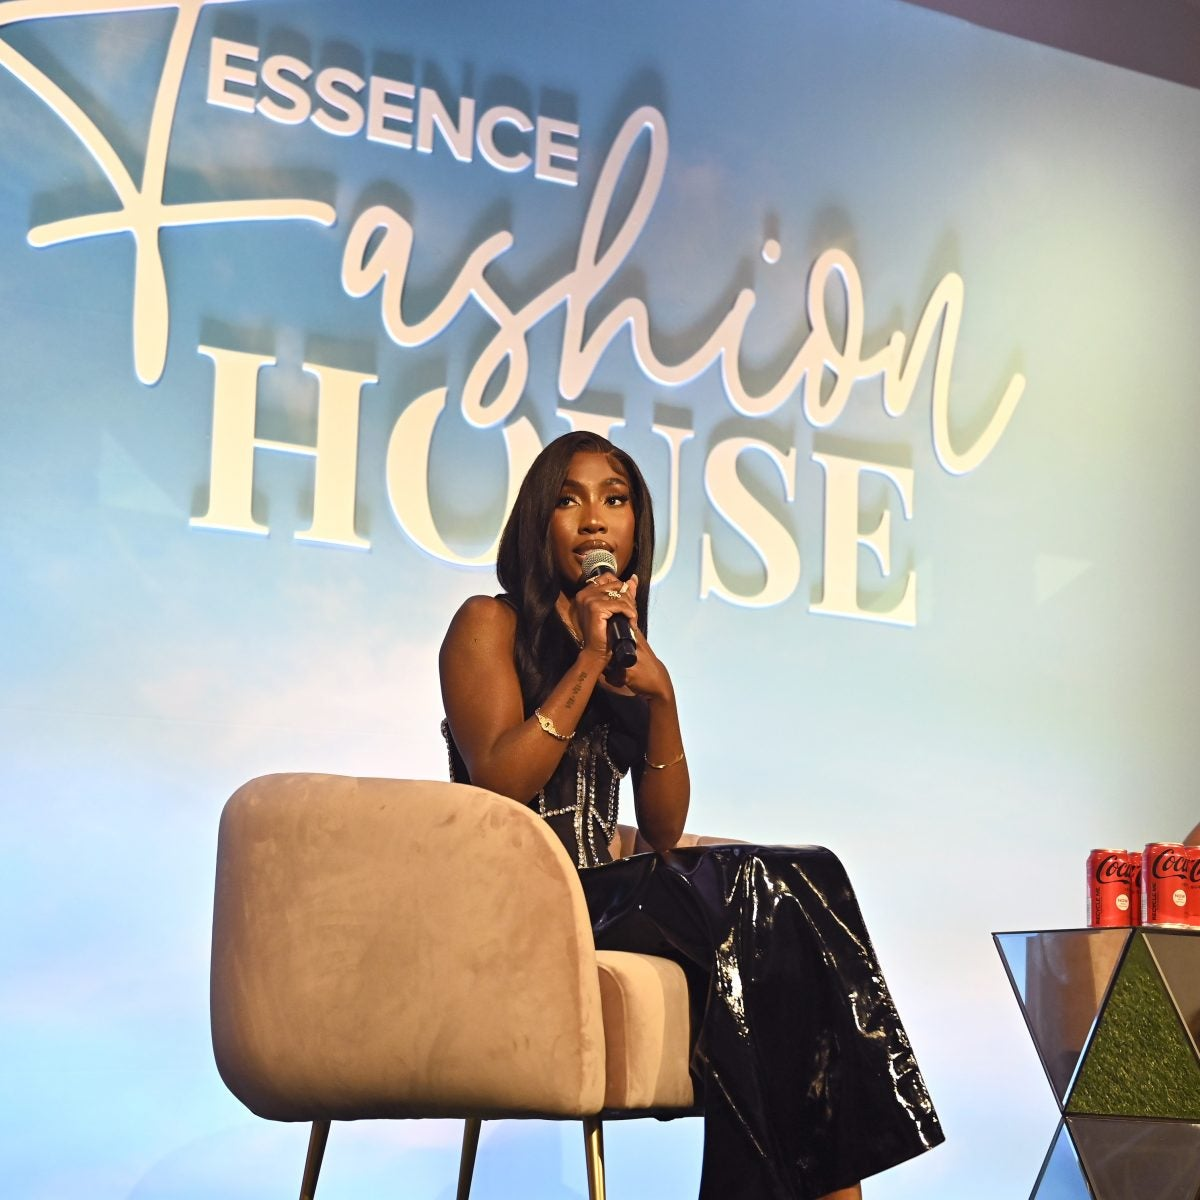 Sevyn Streeter On Her Style: 'I Like To Record And Write According To How I Feel & What I Wear That Day'